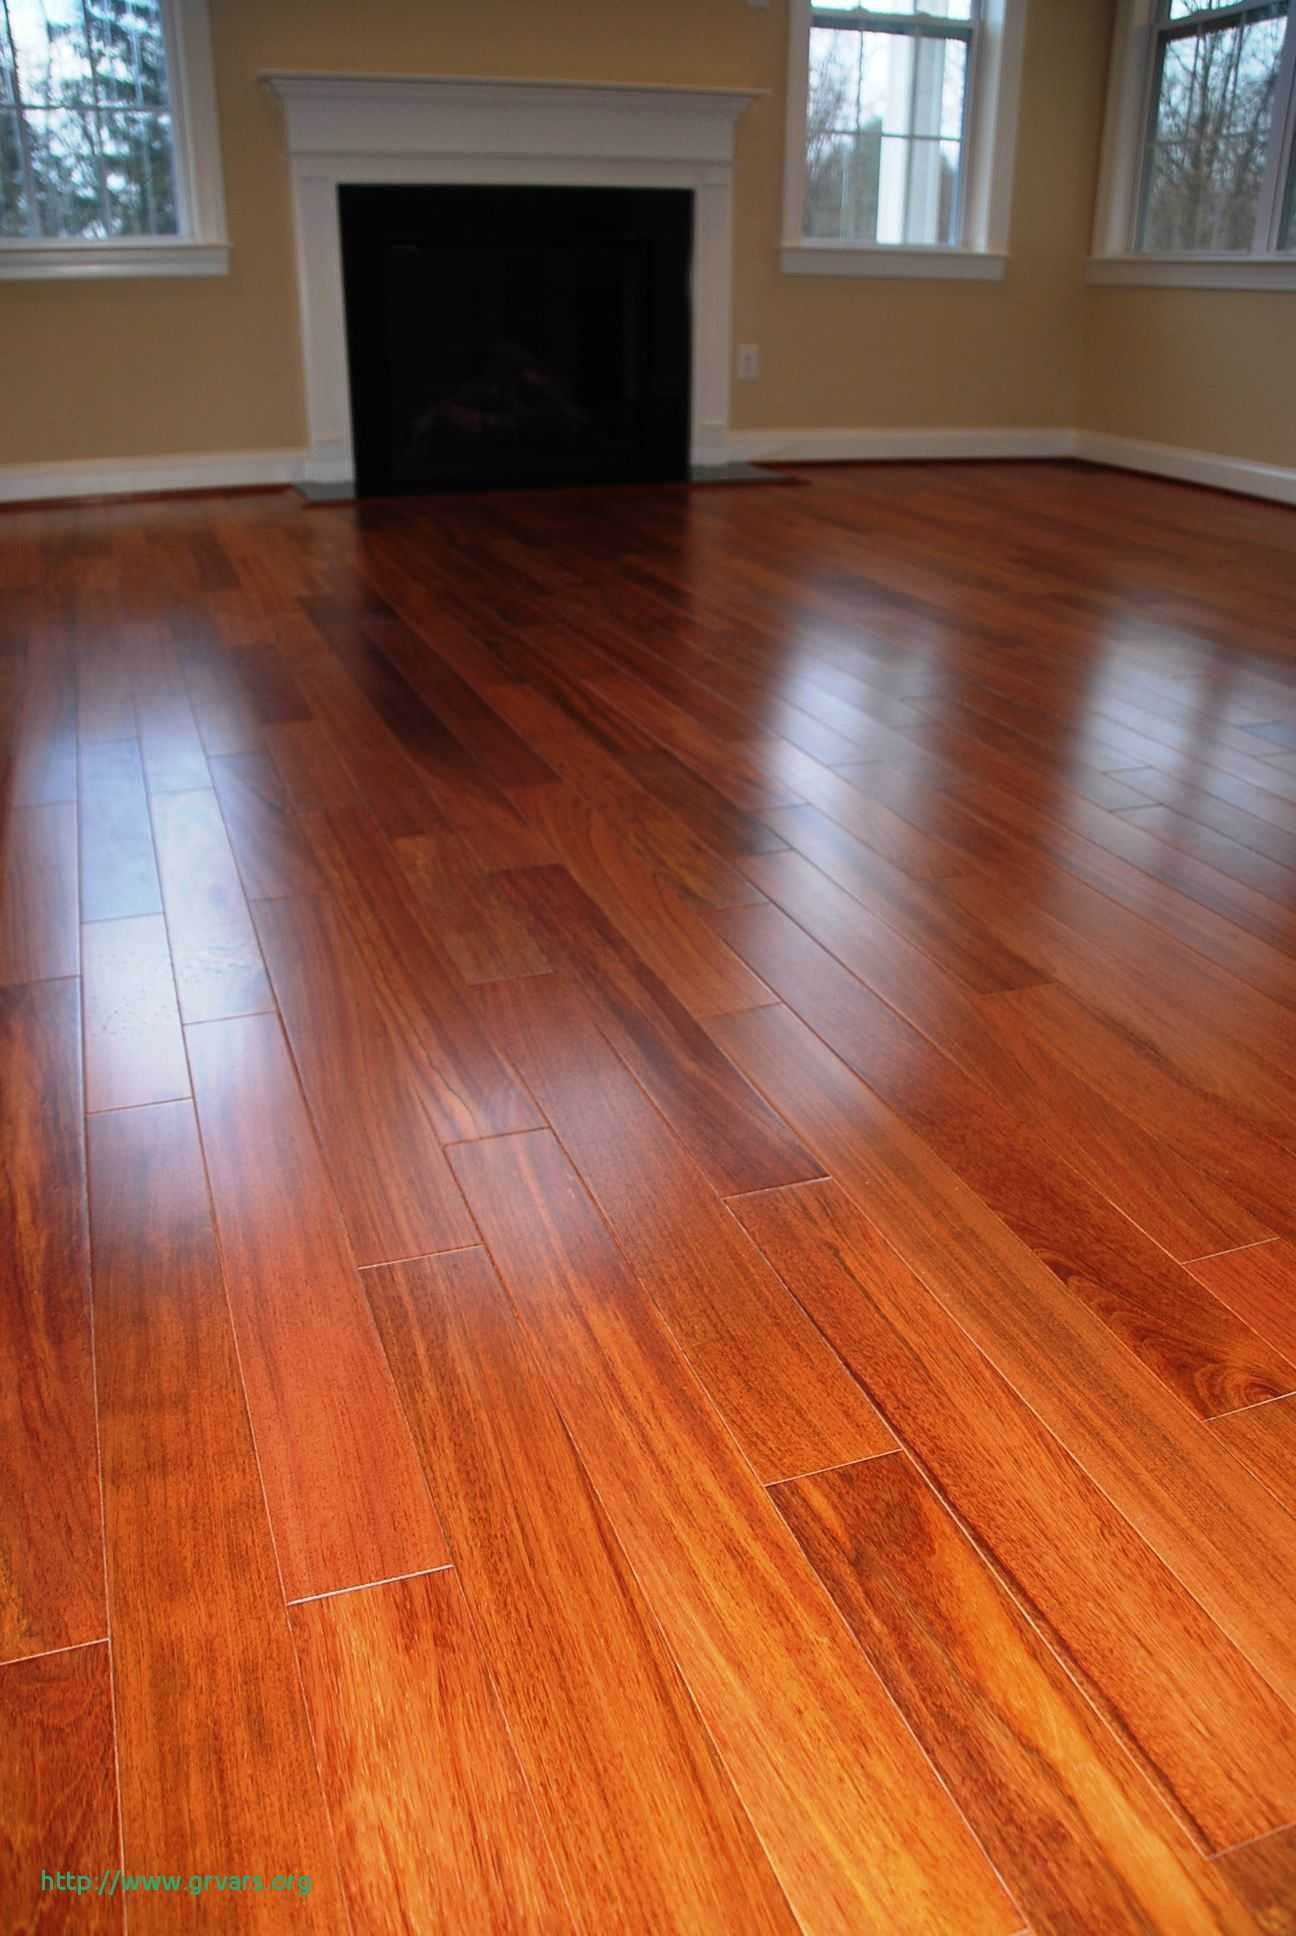 hardwood flooring moncton of 20 nouveau scandia flooring ideas blog inside scandia flooring charmant see why brazilian cherry flooring still lights hearts on fire